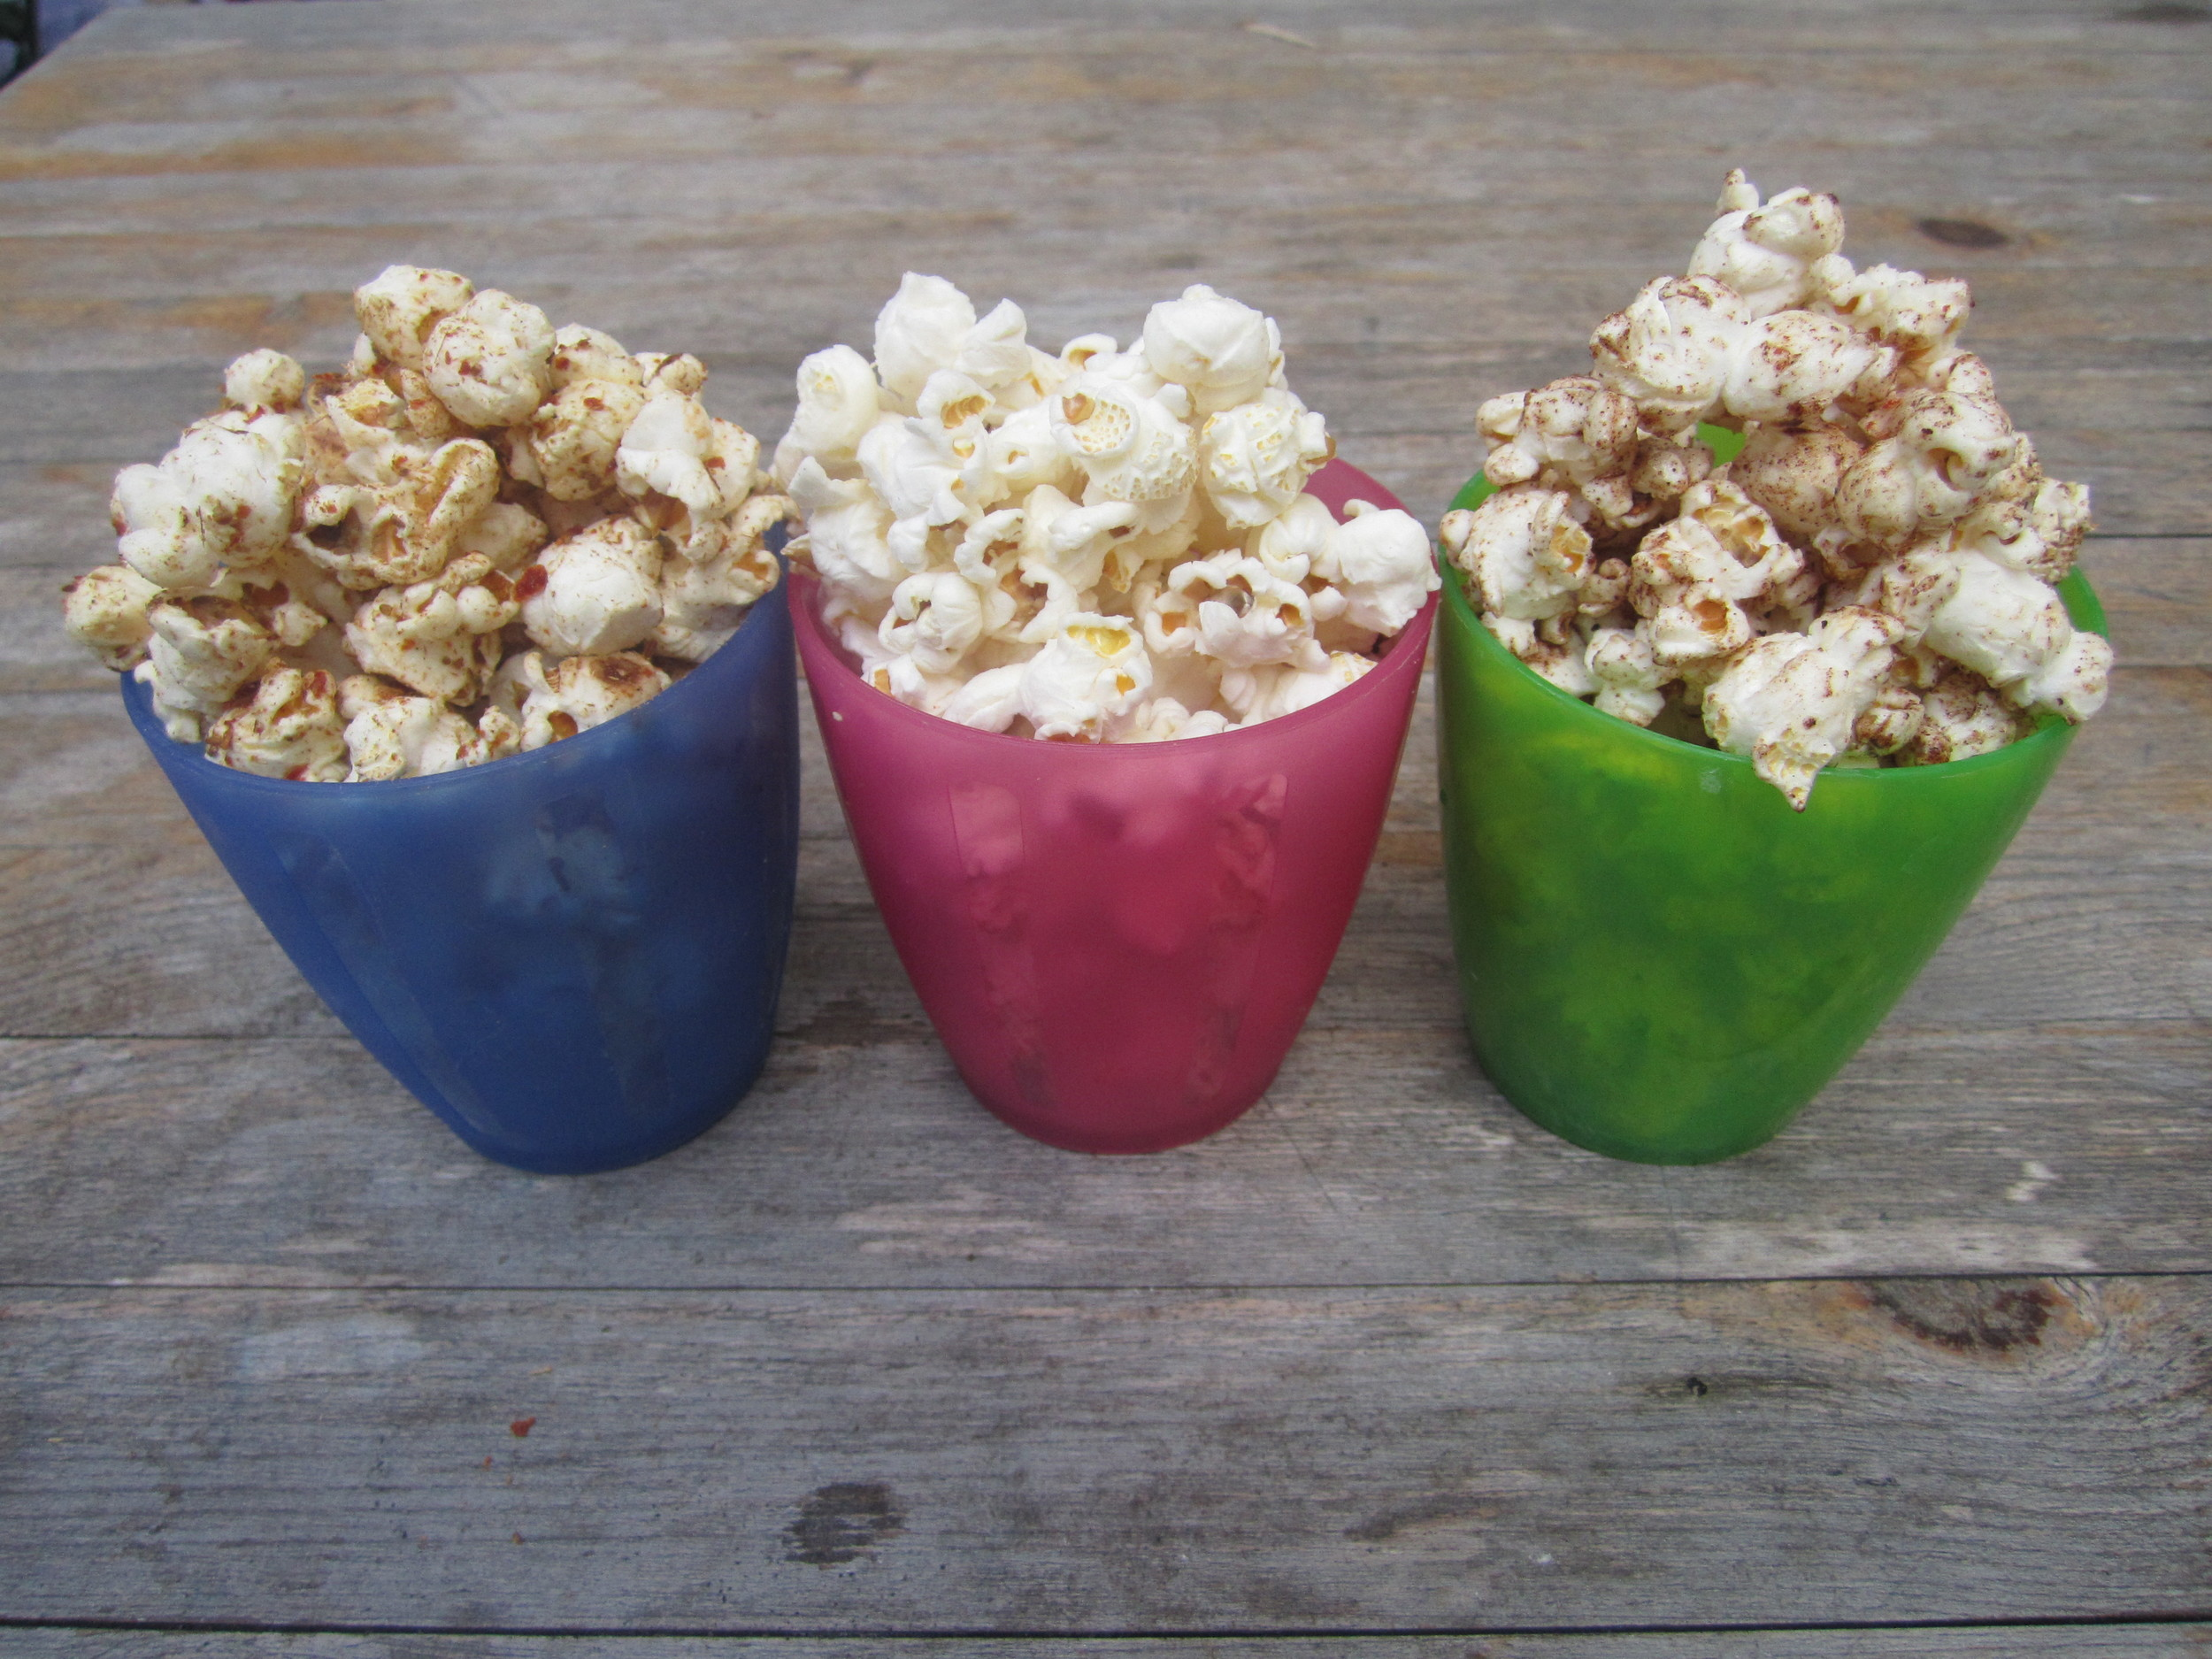 Pop pop popcorn - 3 flavours, smoked paprika & cumin, salt & sarsons + buttered, maple.cinnamon & ginger.